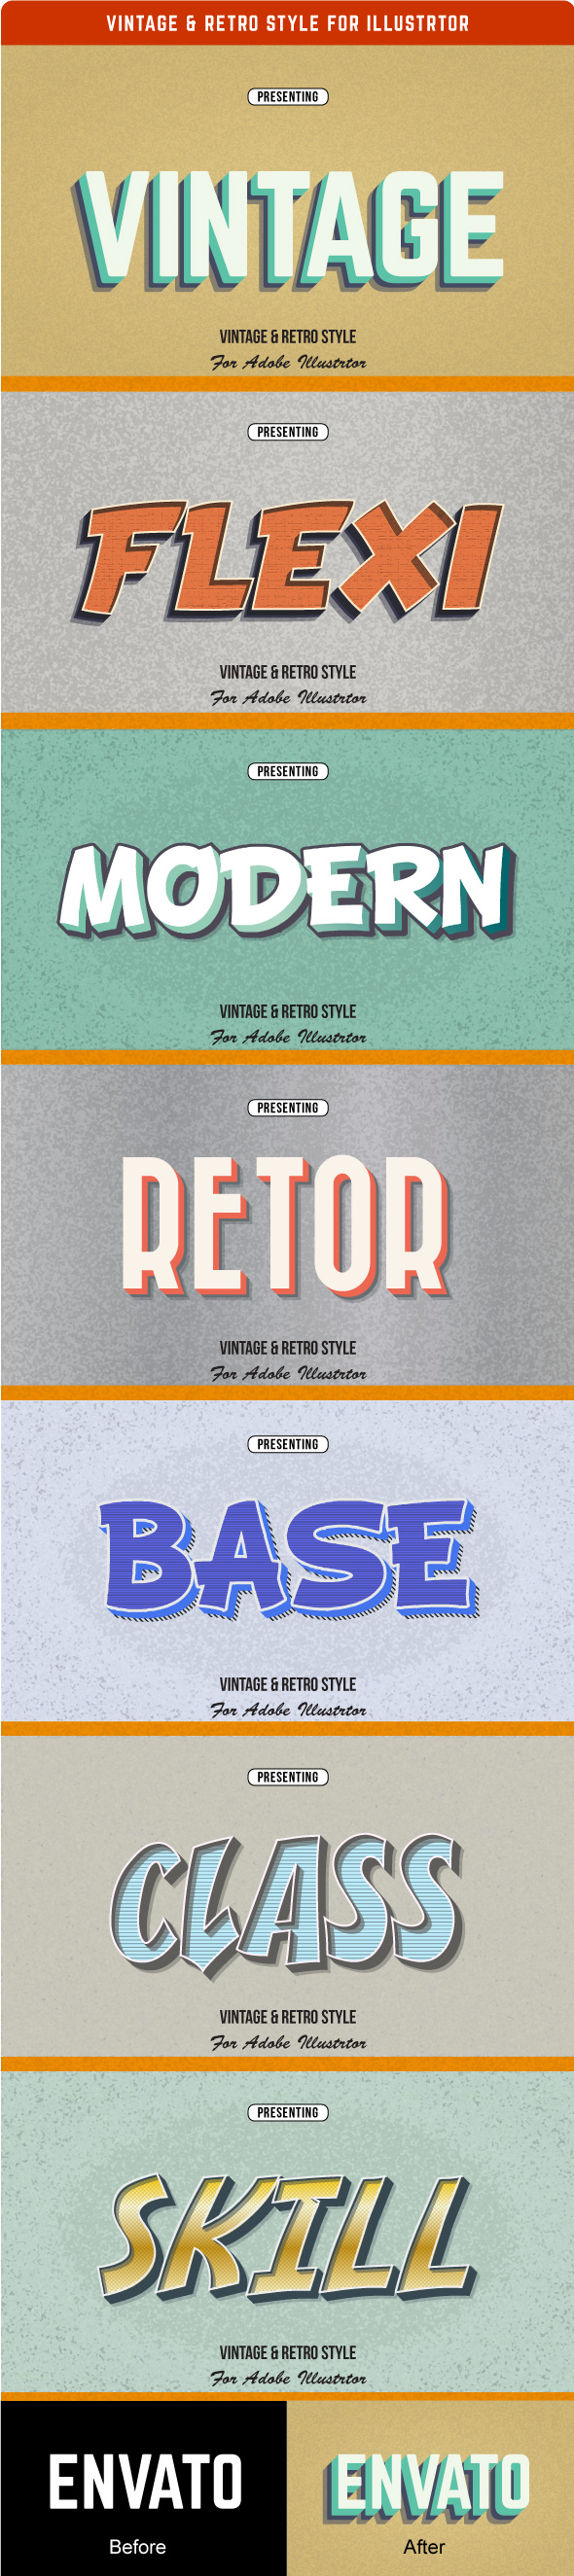 Vintage & Retro Style for Illustrator - Styles Illustrator